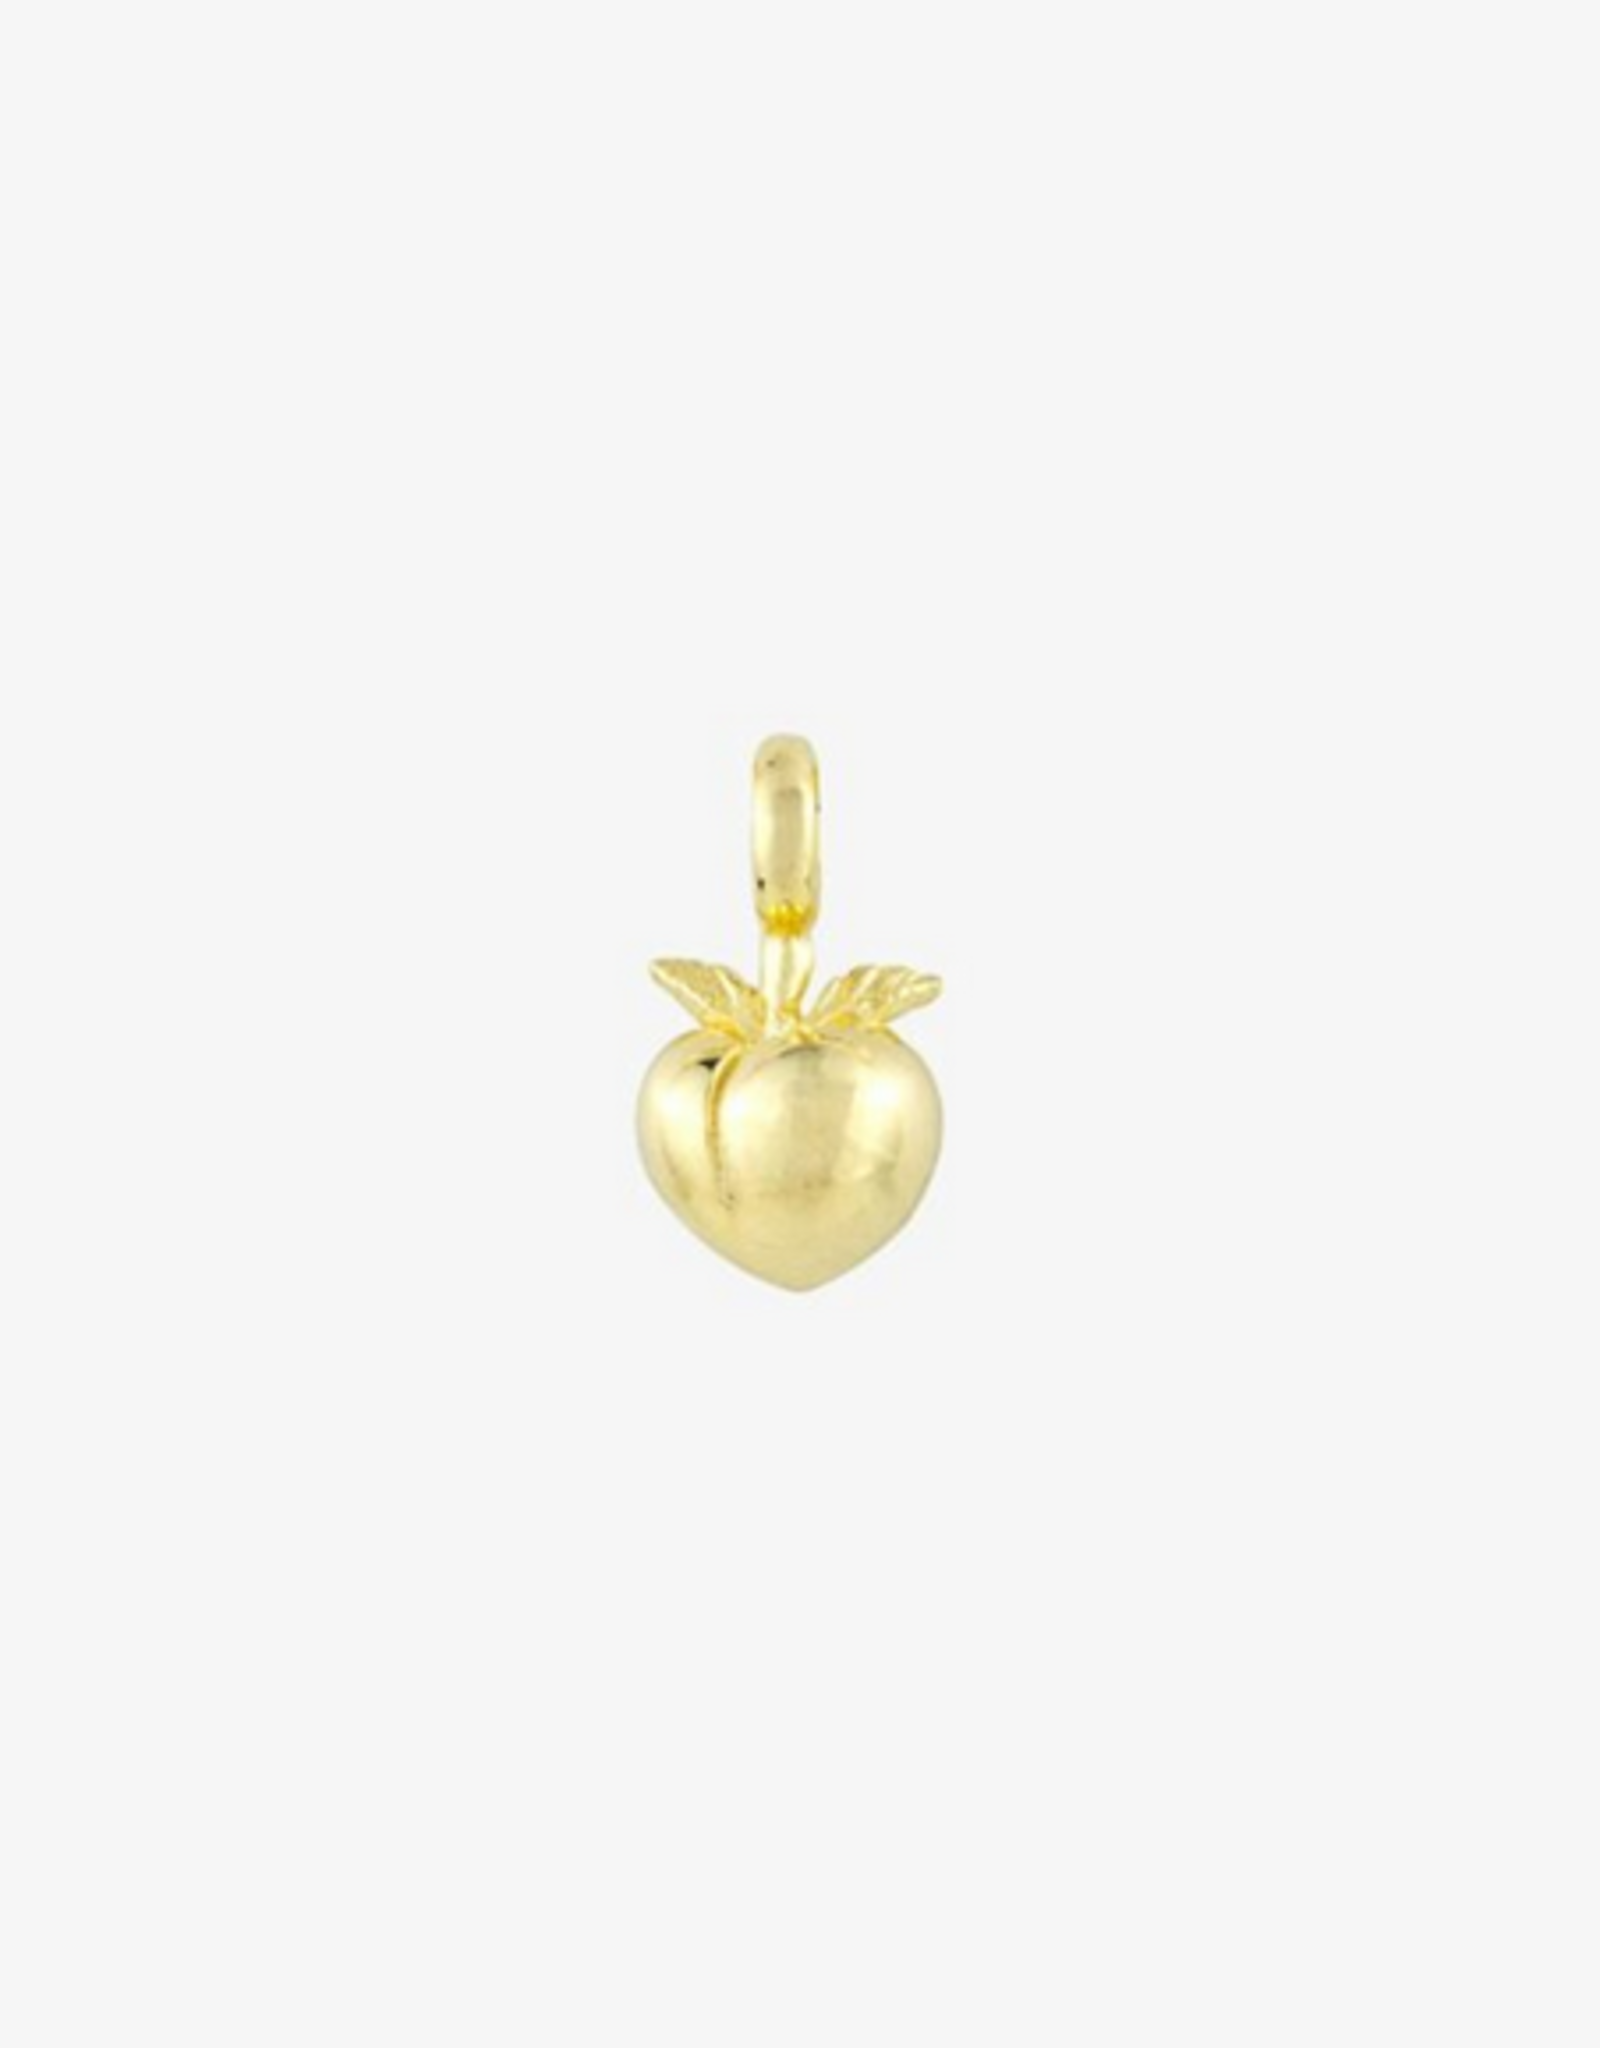 Wildthings Collectables Vintage peach pendant gold